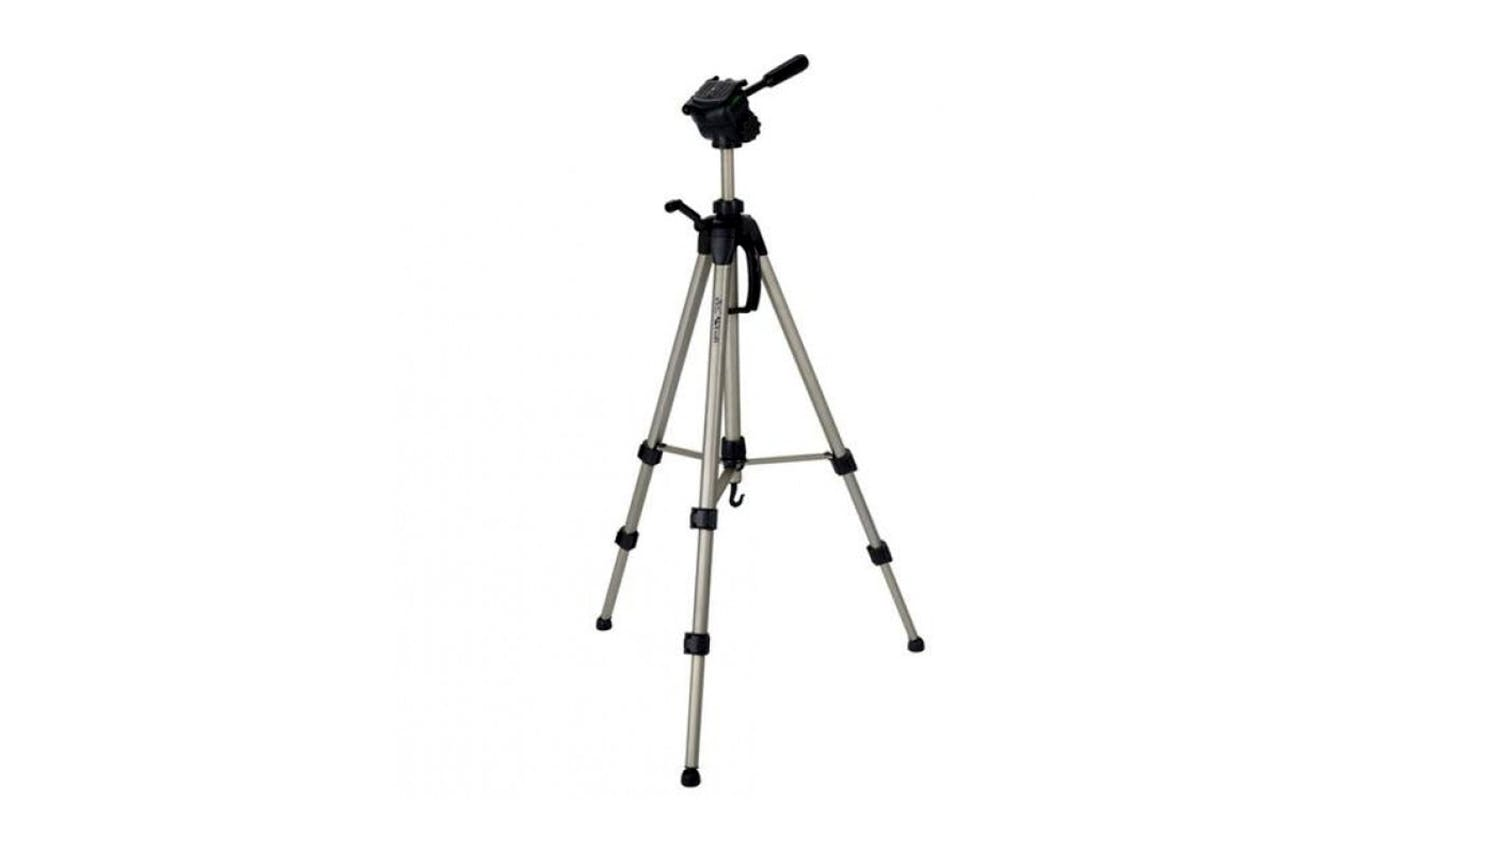 Inca I3770 3-Way Head Tripod